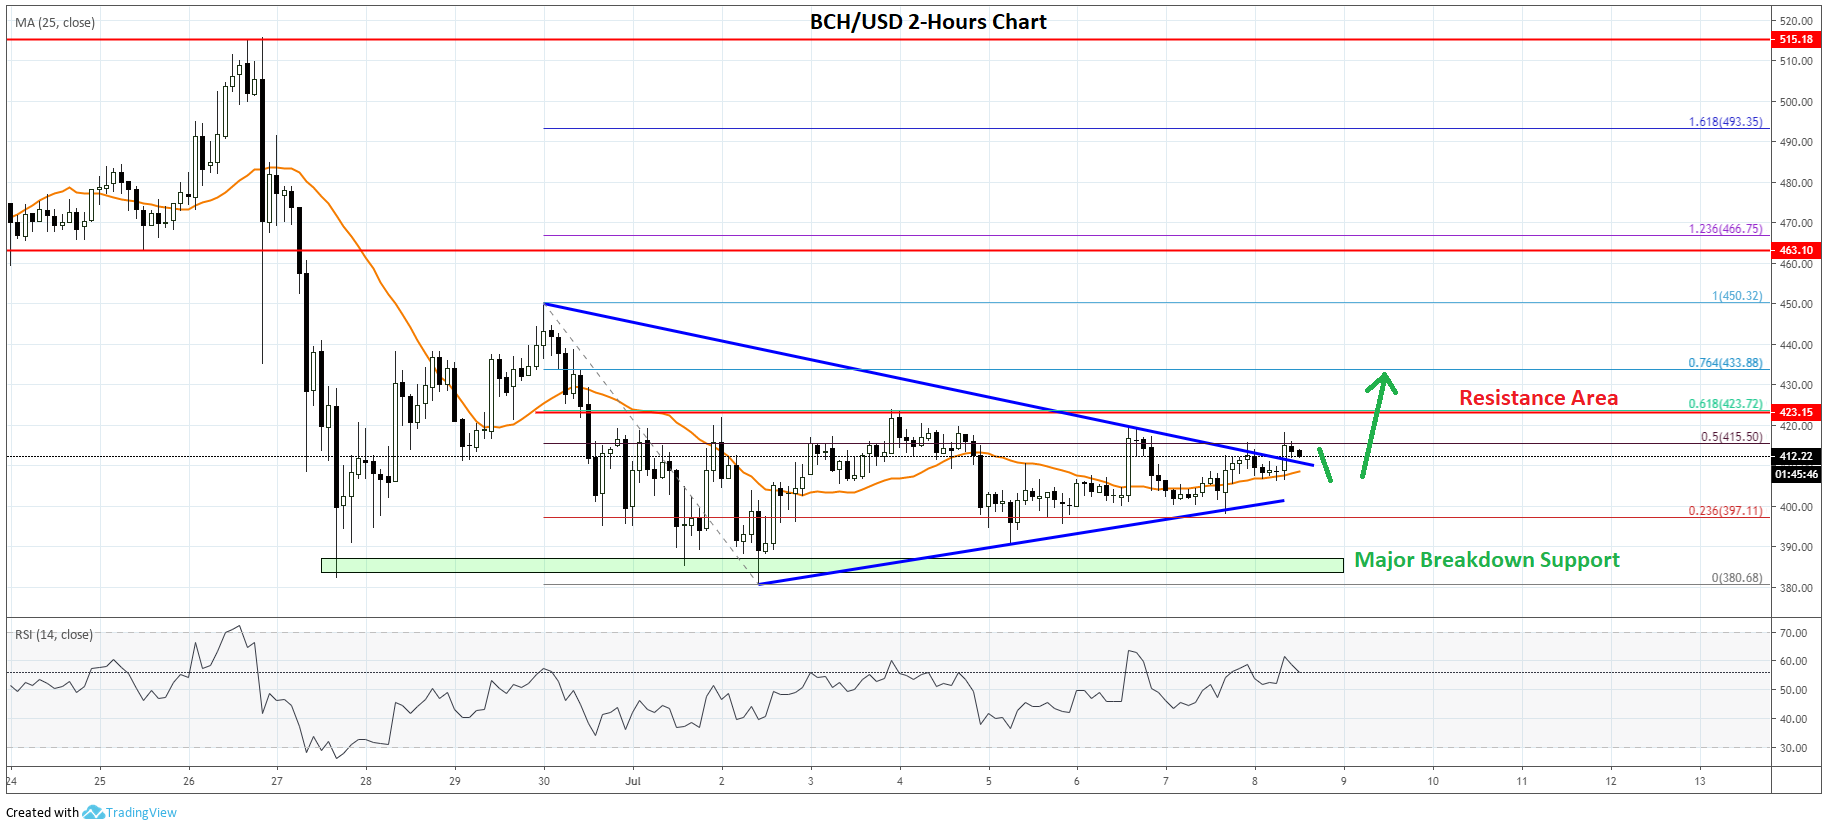 Bitcoin Cash Price Analysis (BCH to USD)